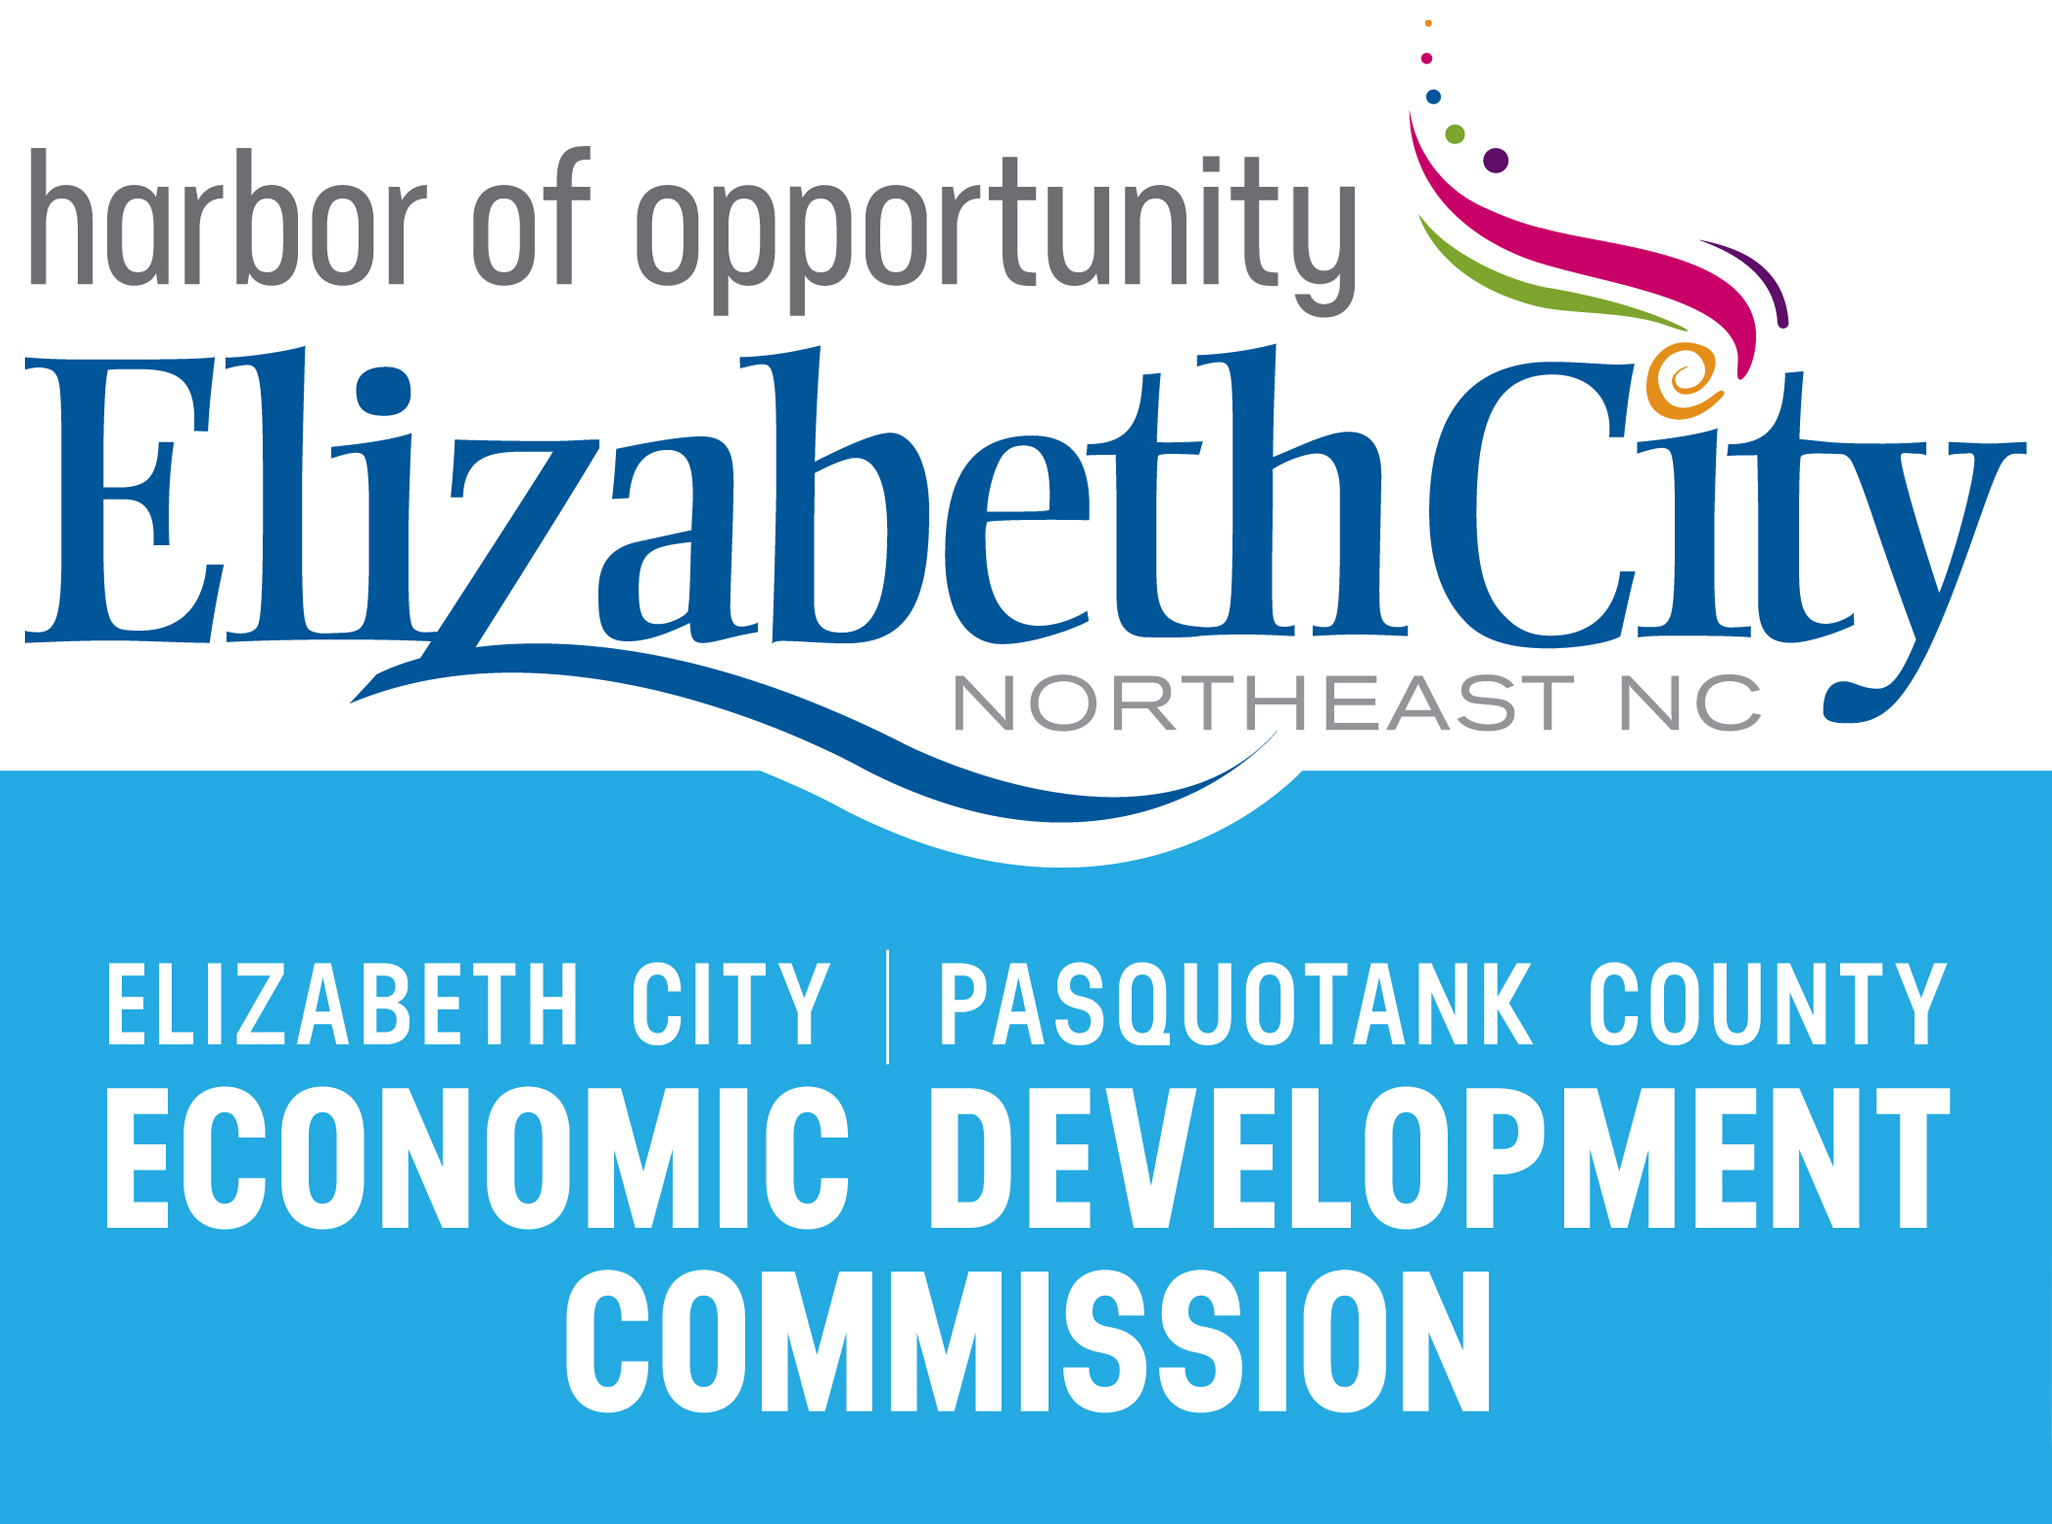 Elizabeth City Economic Development